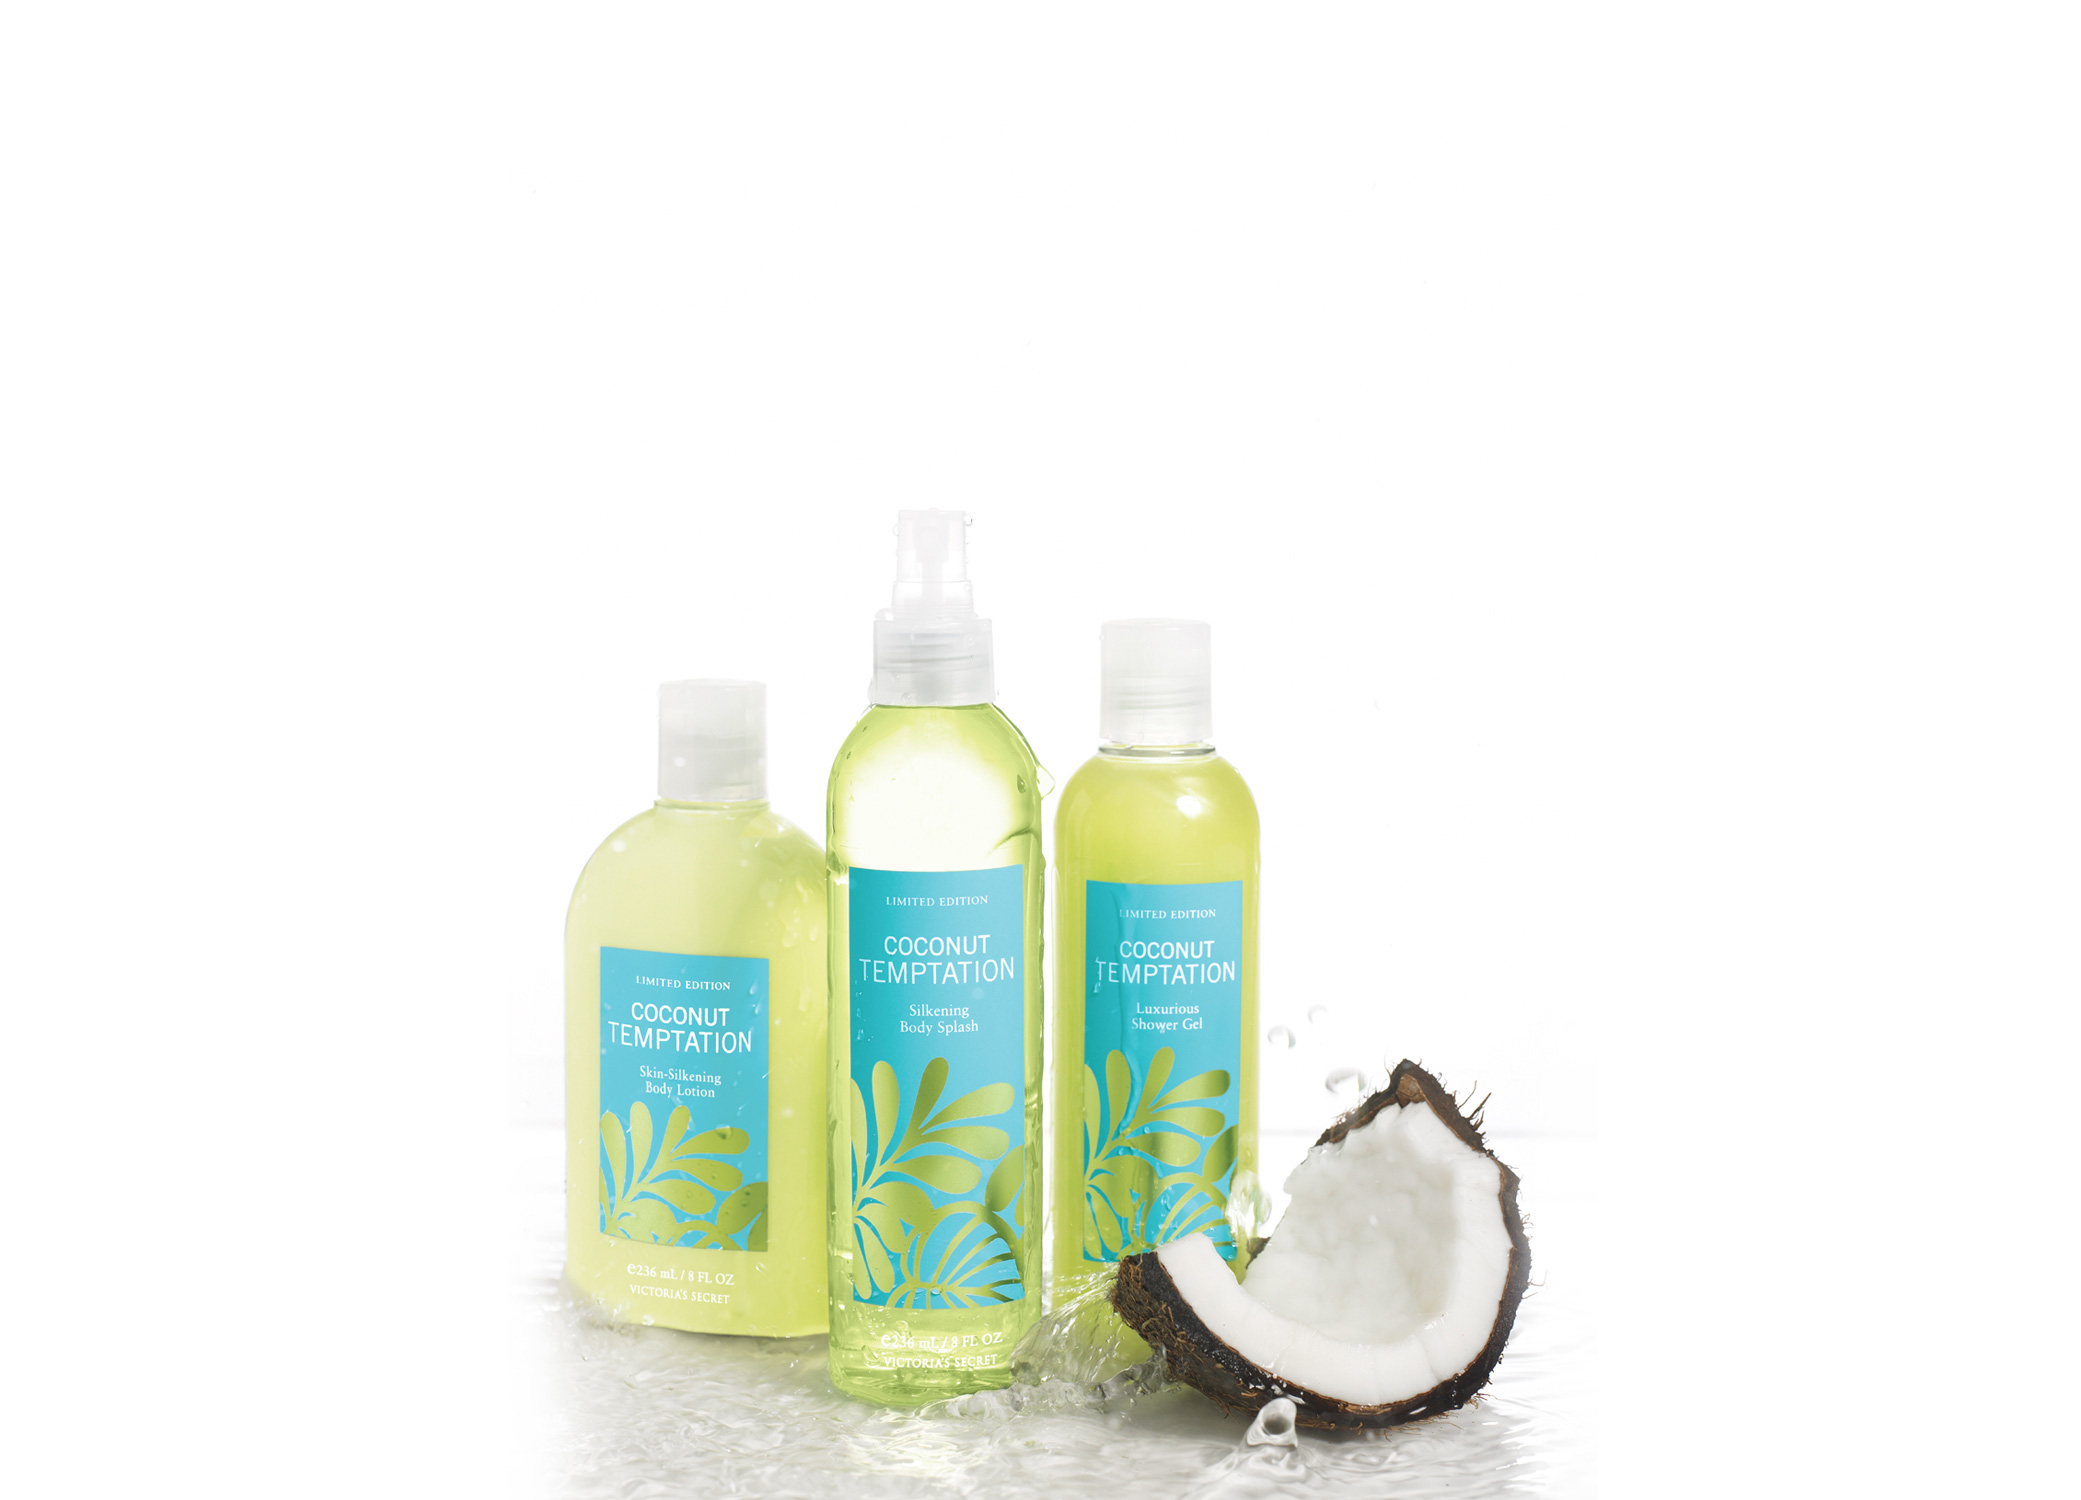 Packaging for bath and body products Victoria's Secret Summer Promo Coconut Temptation line with blues and greens with coconut slice.